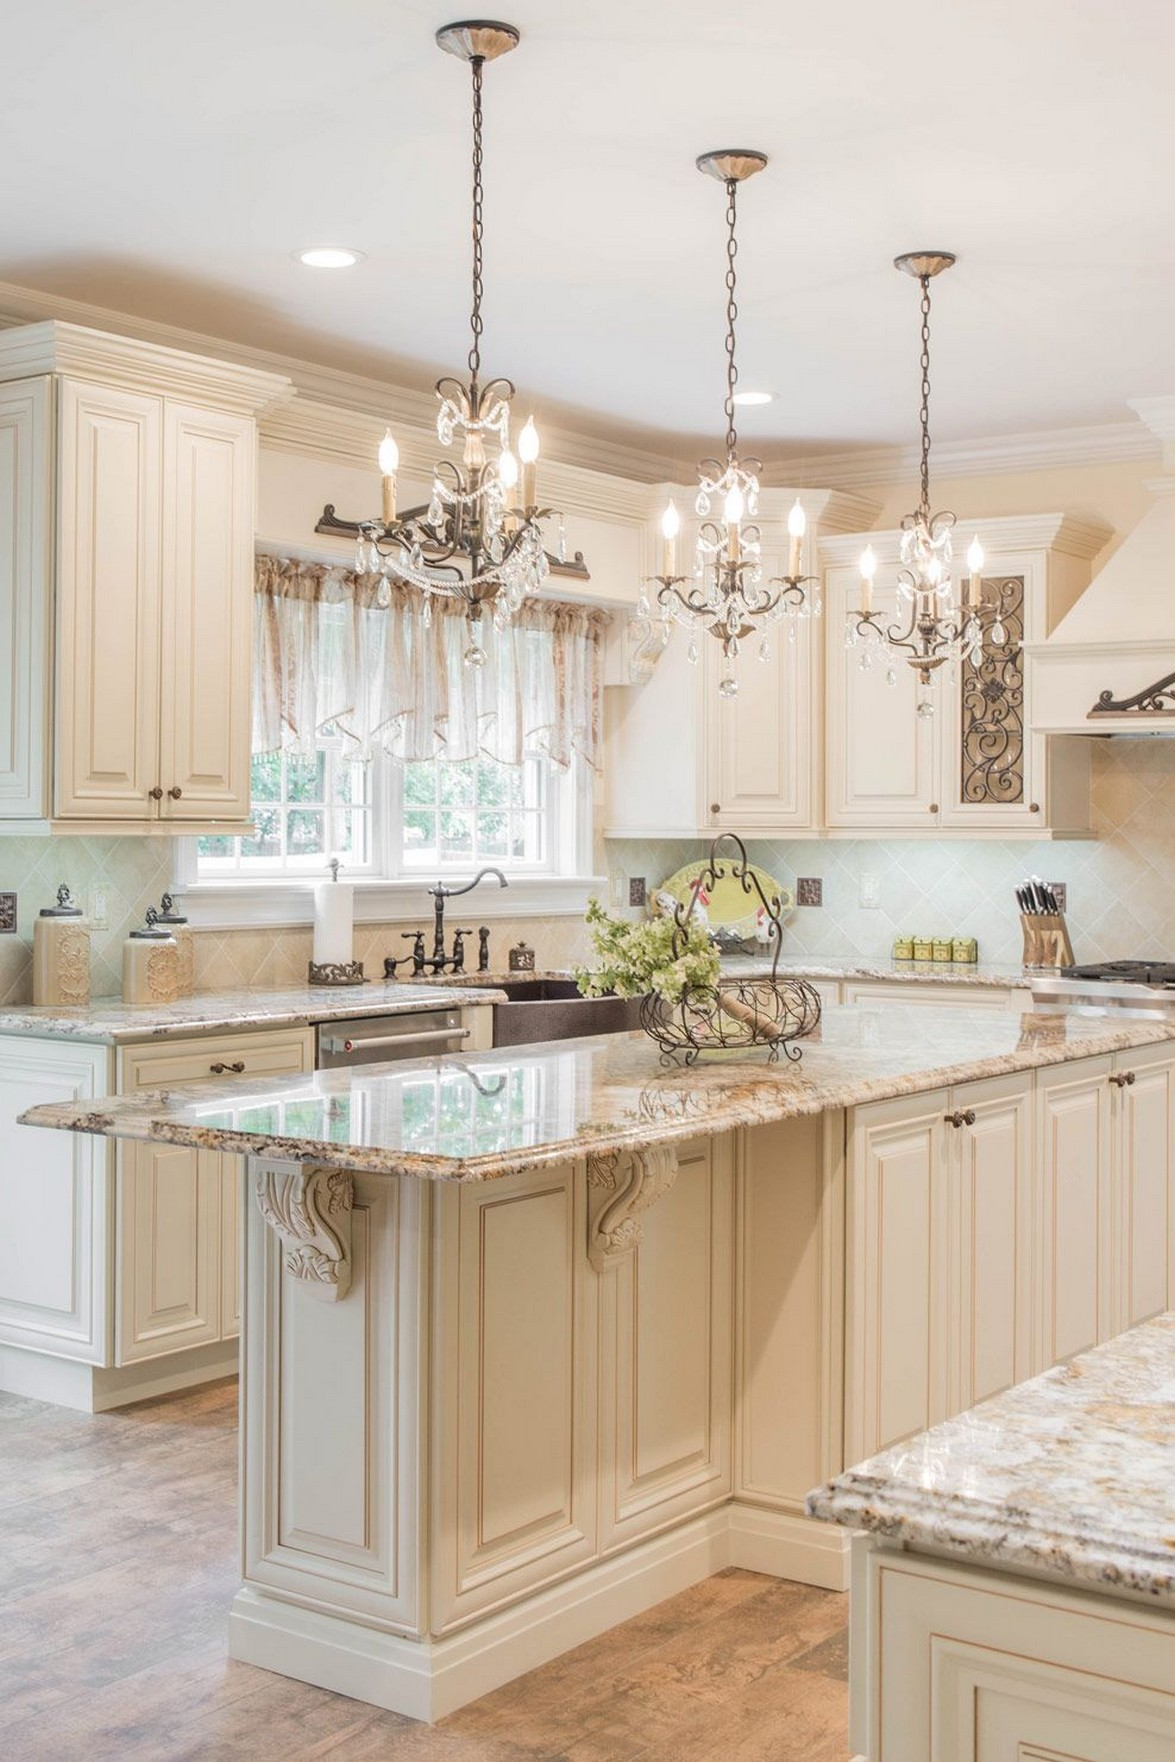 71 Painted Kitchen Cabinets Ideas For Home Decor 57